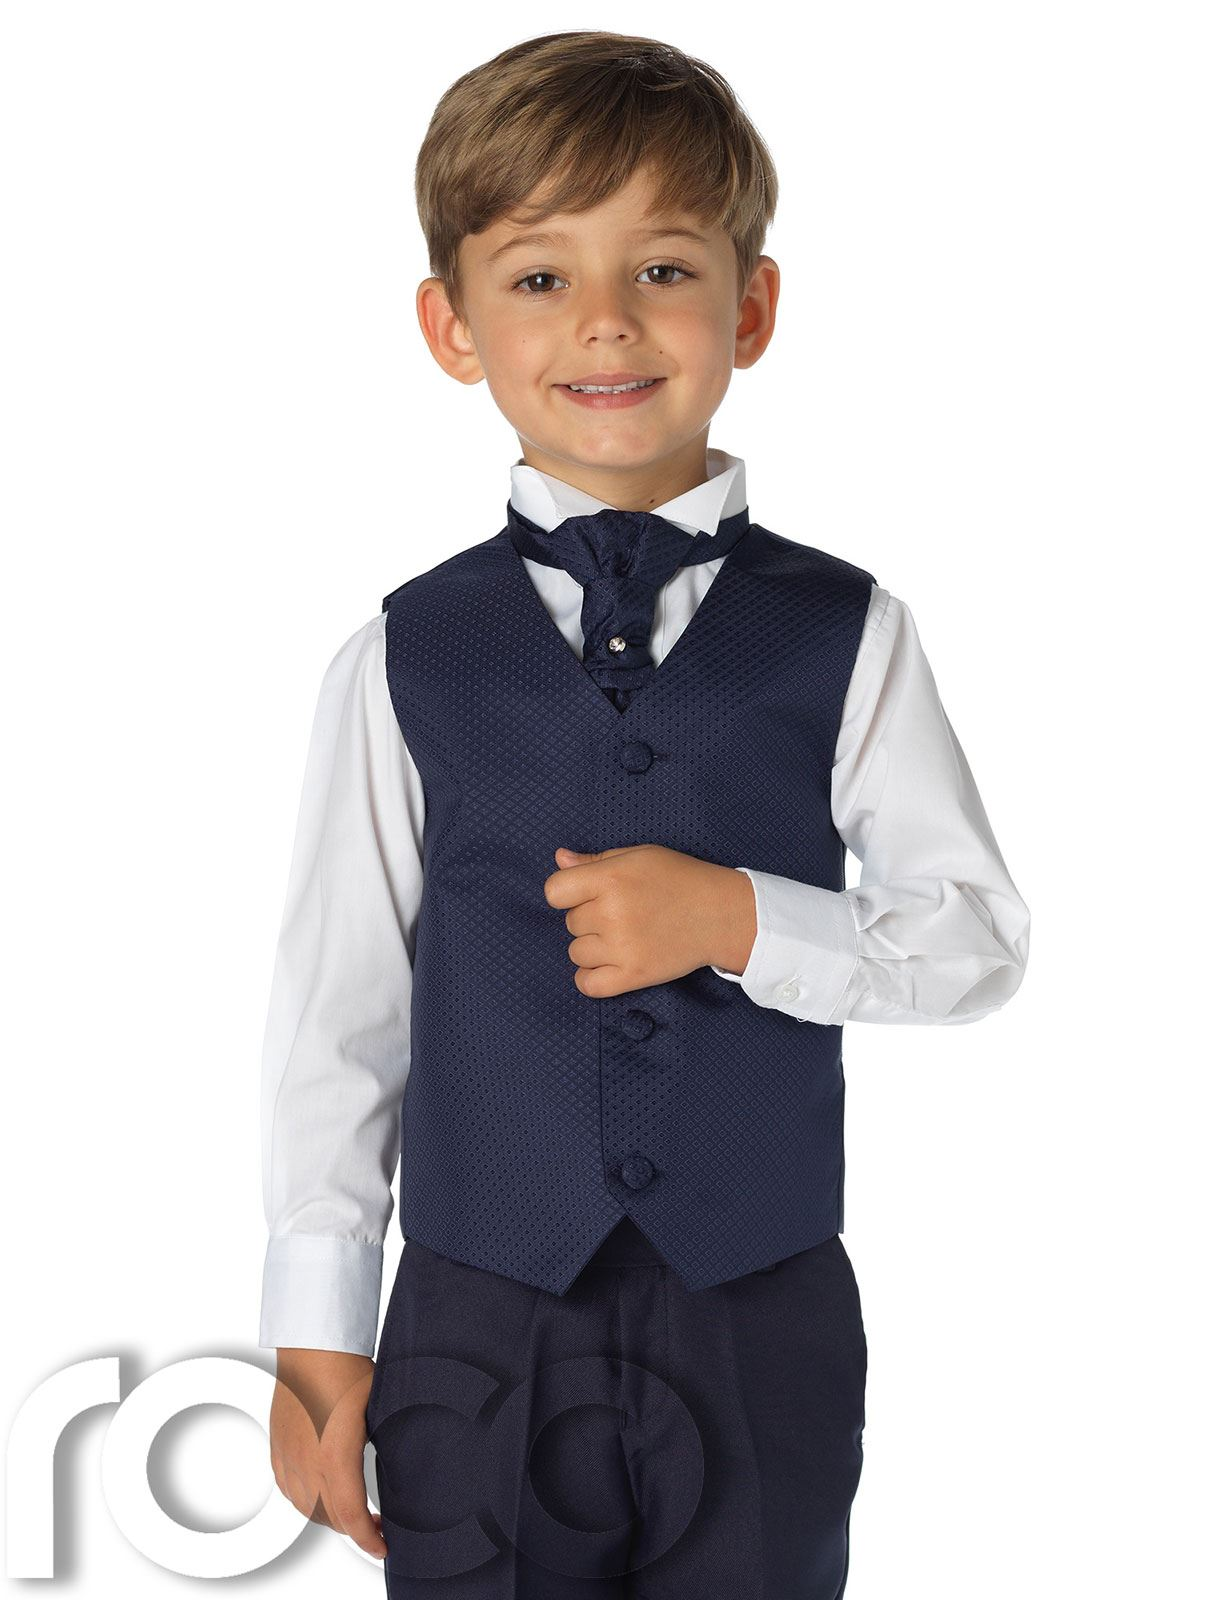 Boys Waistcoats A selection of quality boys waistcoats perfect for page boys at weddings, proms, parties and any special event. With many colours and styles to choose from you'll be able to find a boy's waistcoat perfect for your event.